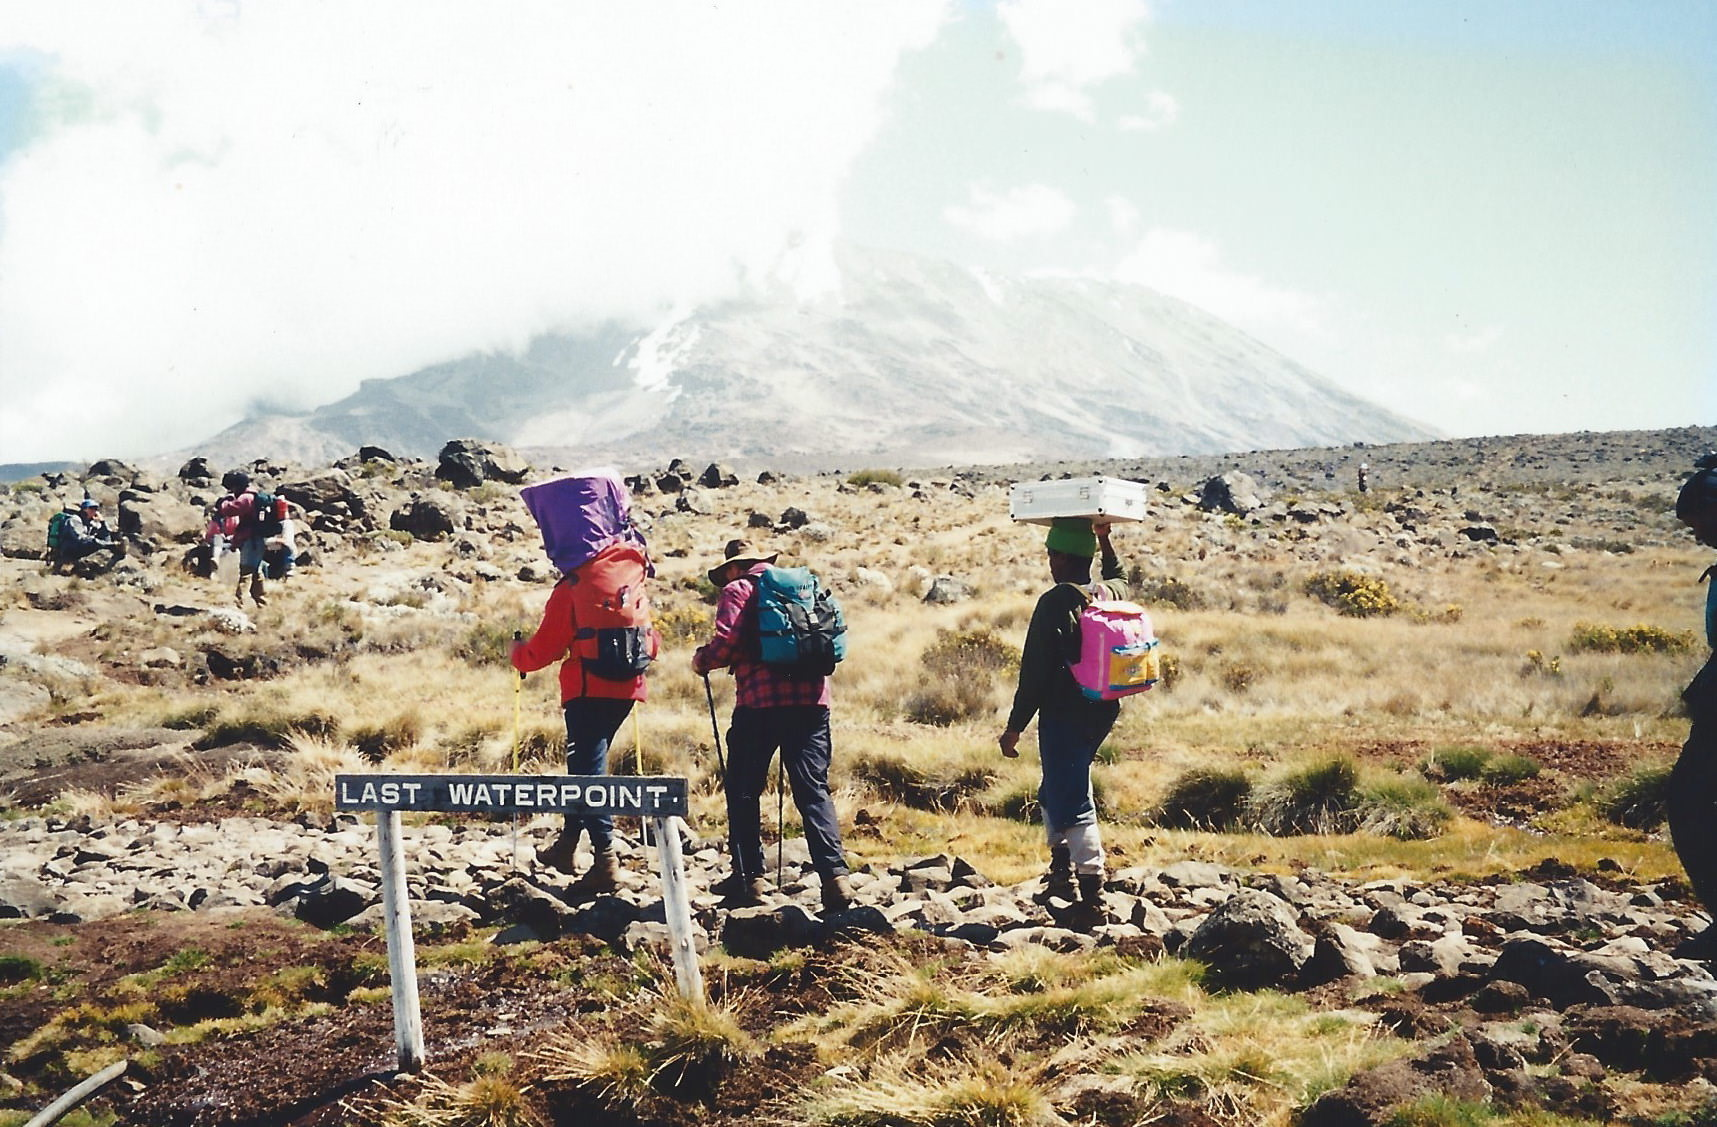 Out of Styria – Emperor's  Waltz on the Kilimanjaro